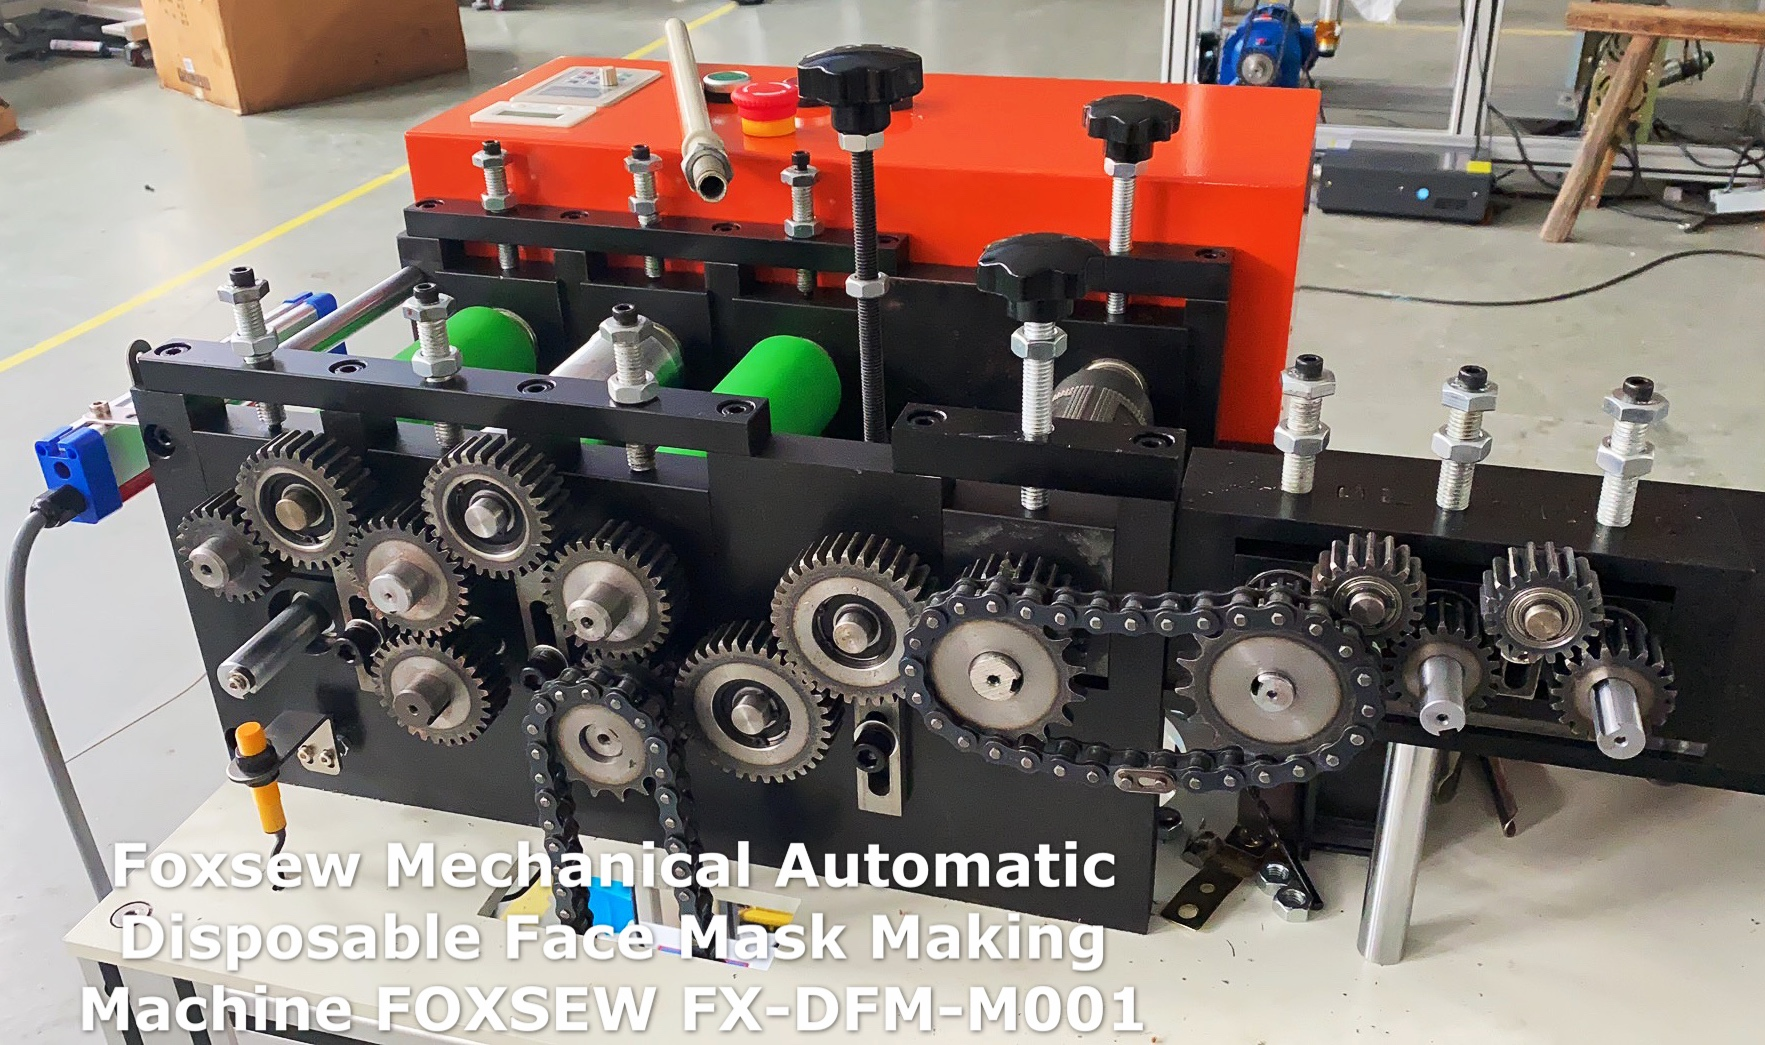 Mechanical Automatic Disposable Face Mask Making Machines (2)